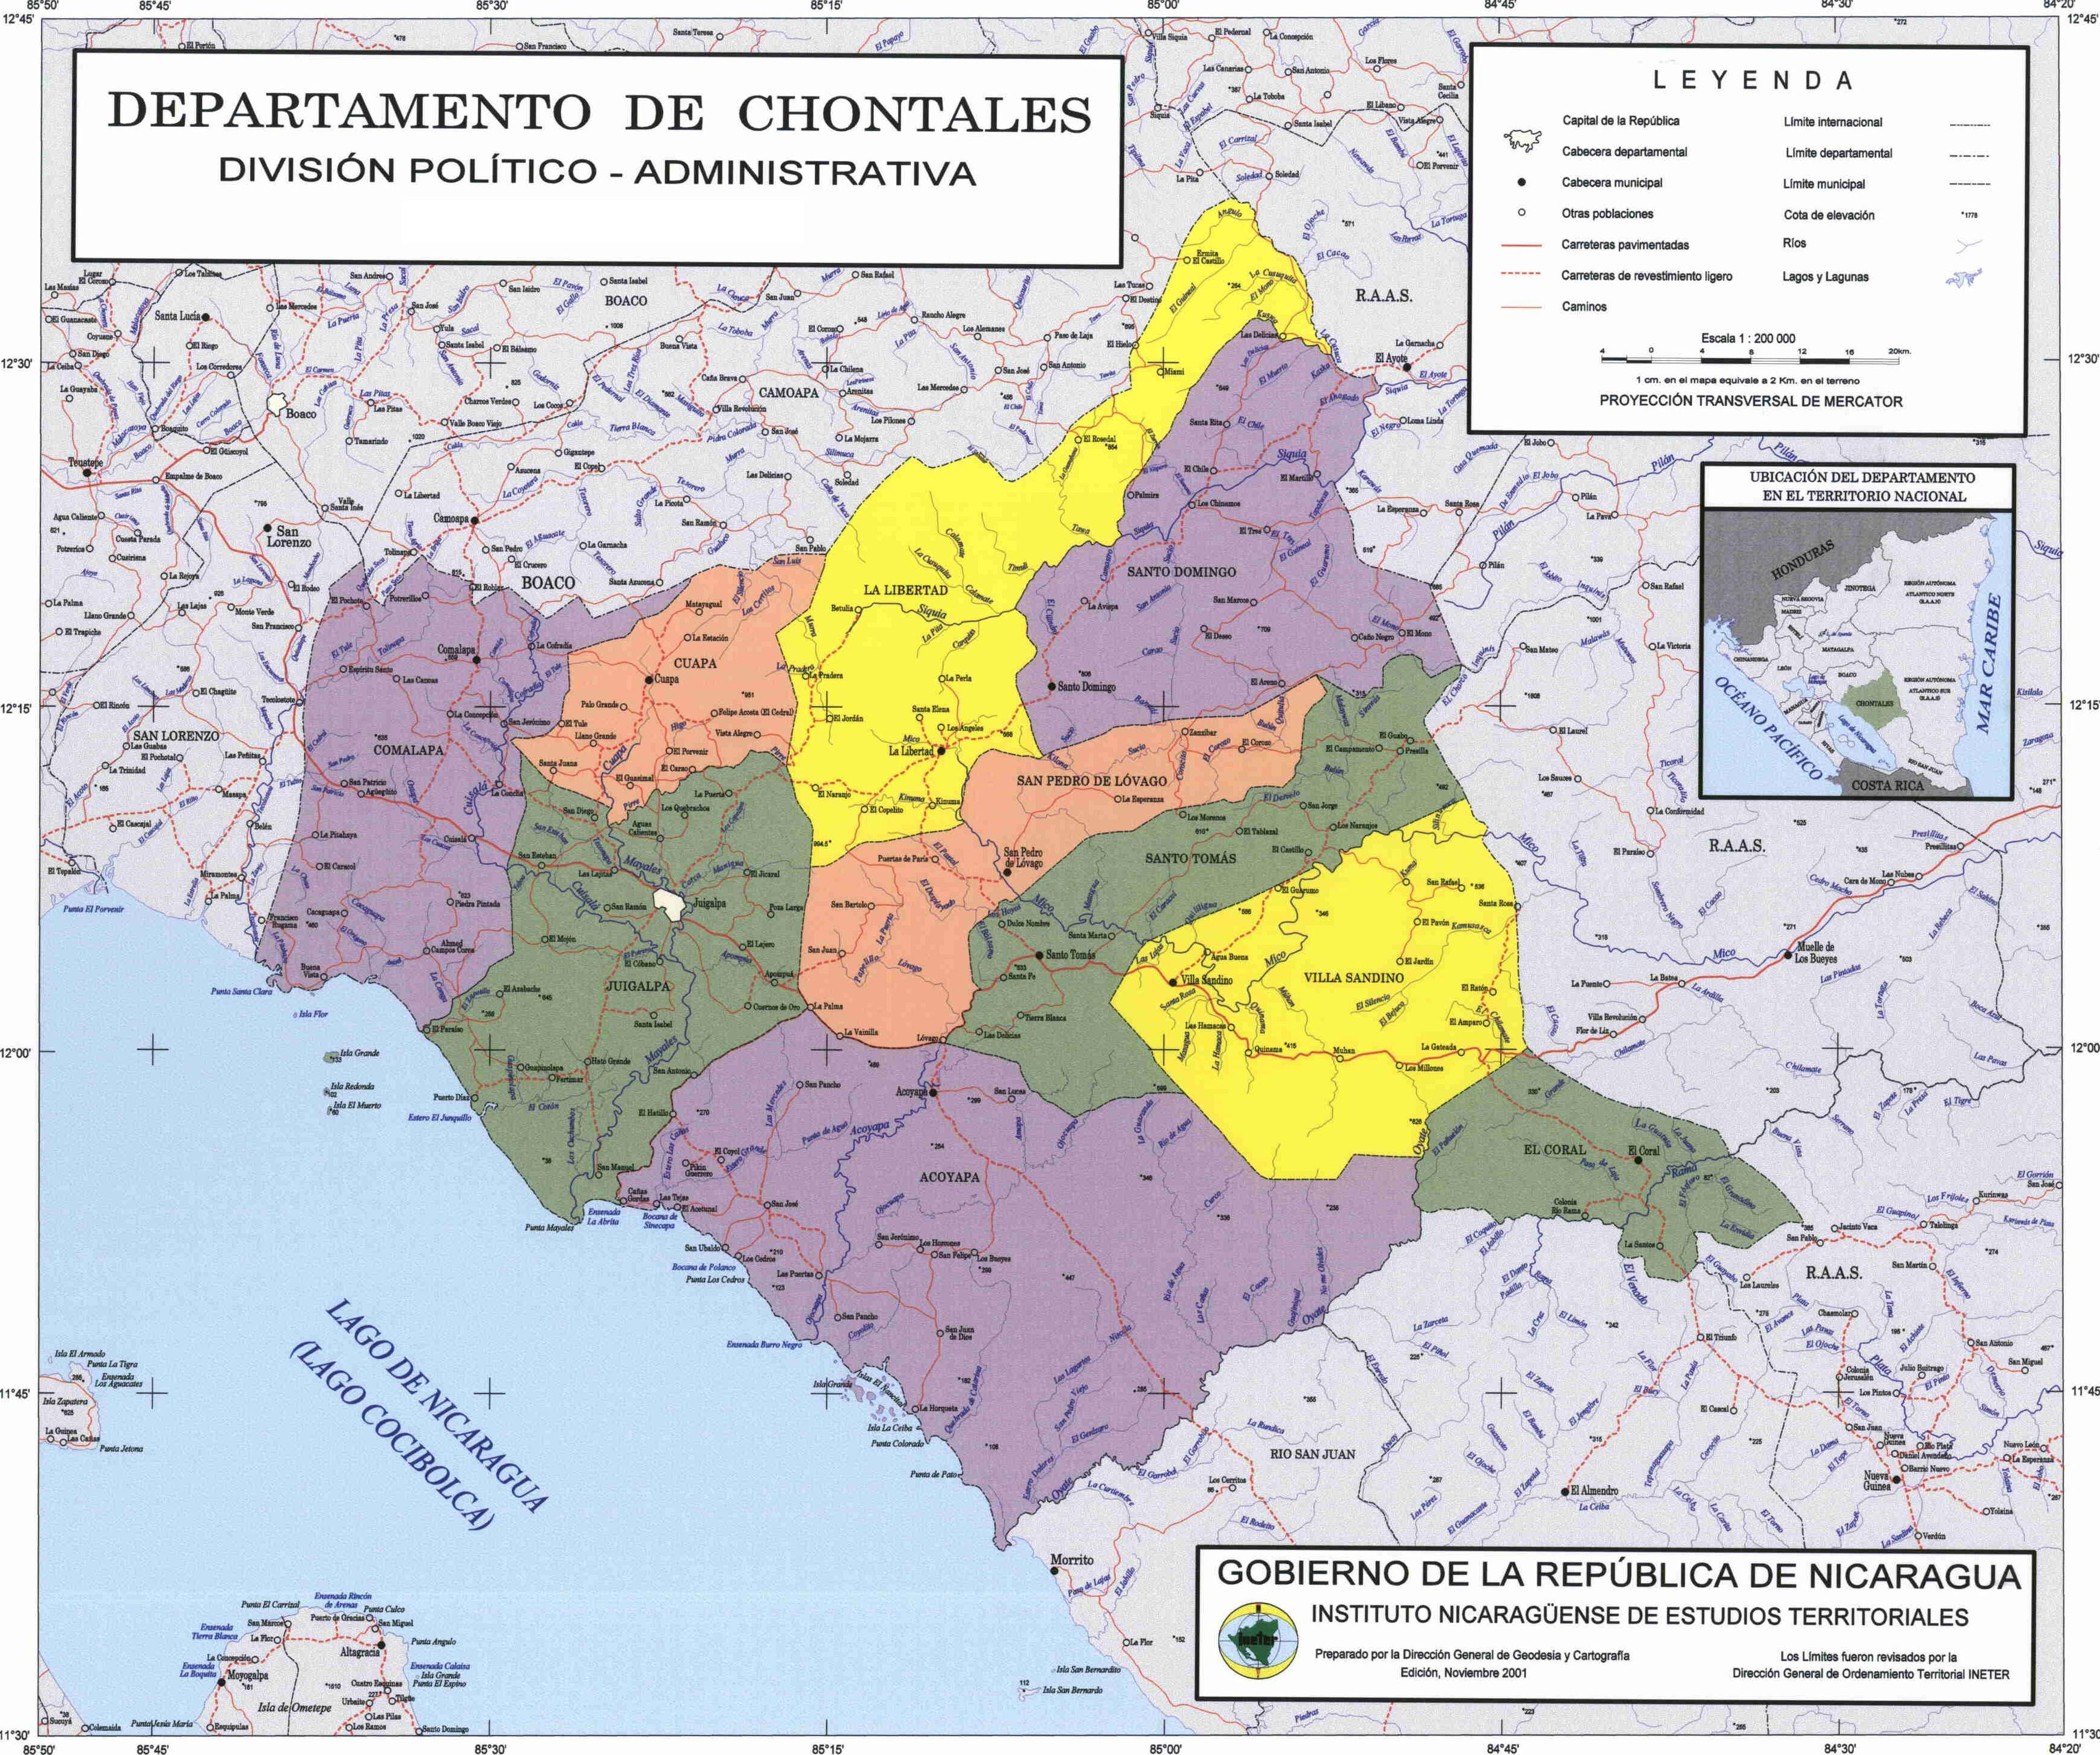 Chontales Department Administrative Political Map, Nicaragua